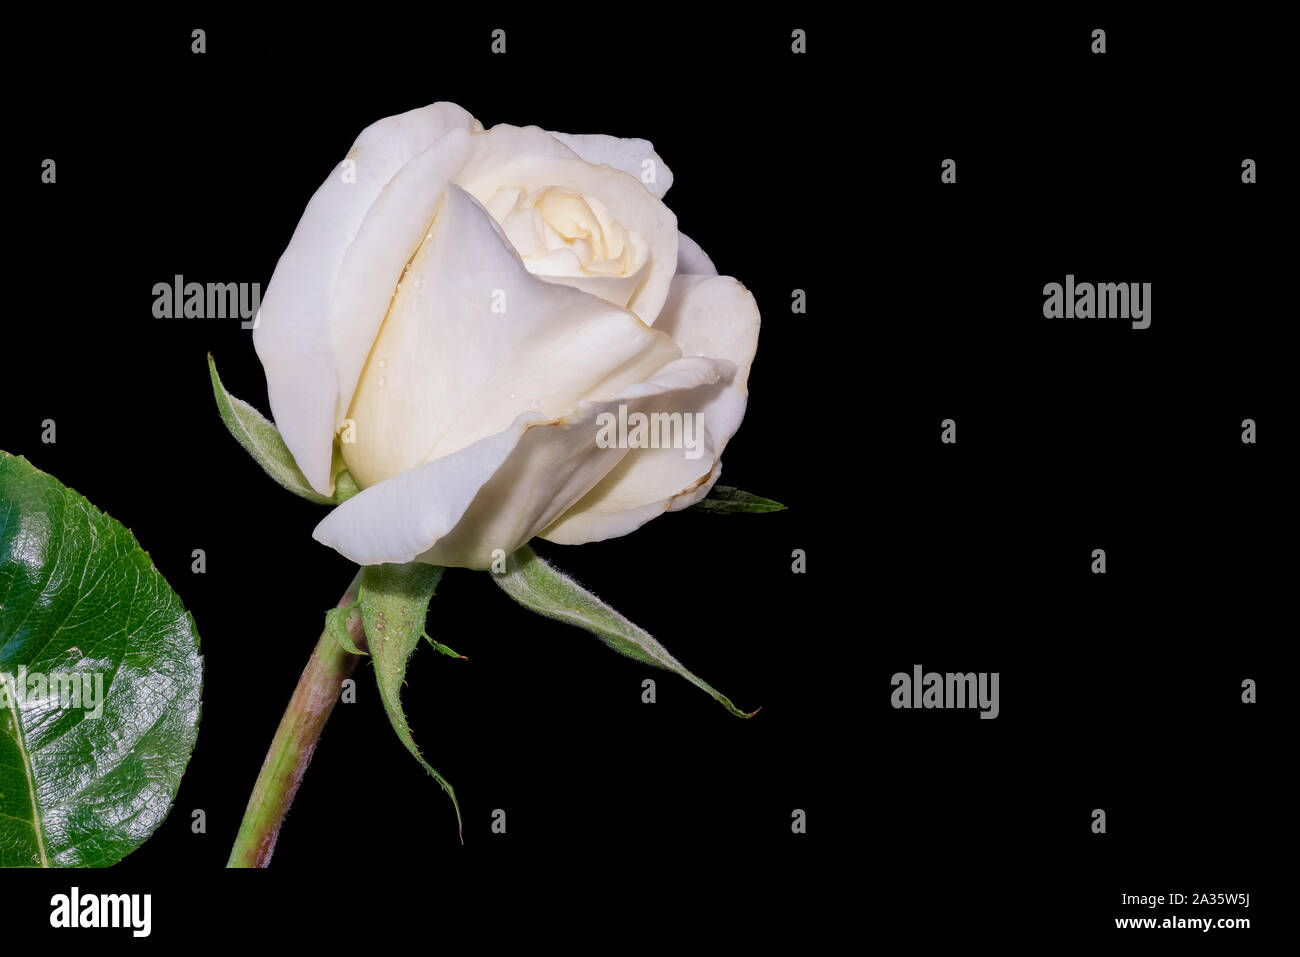 Flower Macro Of A Fresh Yellow White Rose Blossom With Rain Drops Stem Leaves Detailed Texture On Black Background Stock Photo Alamy